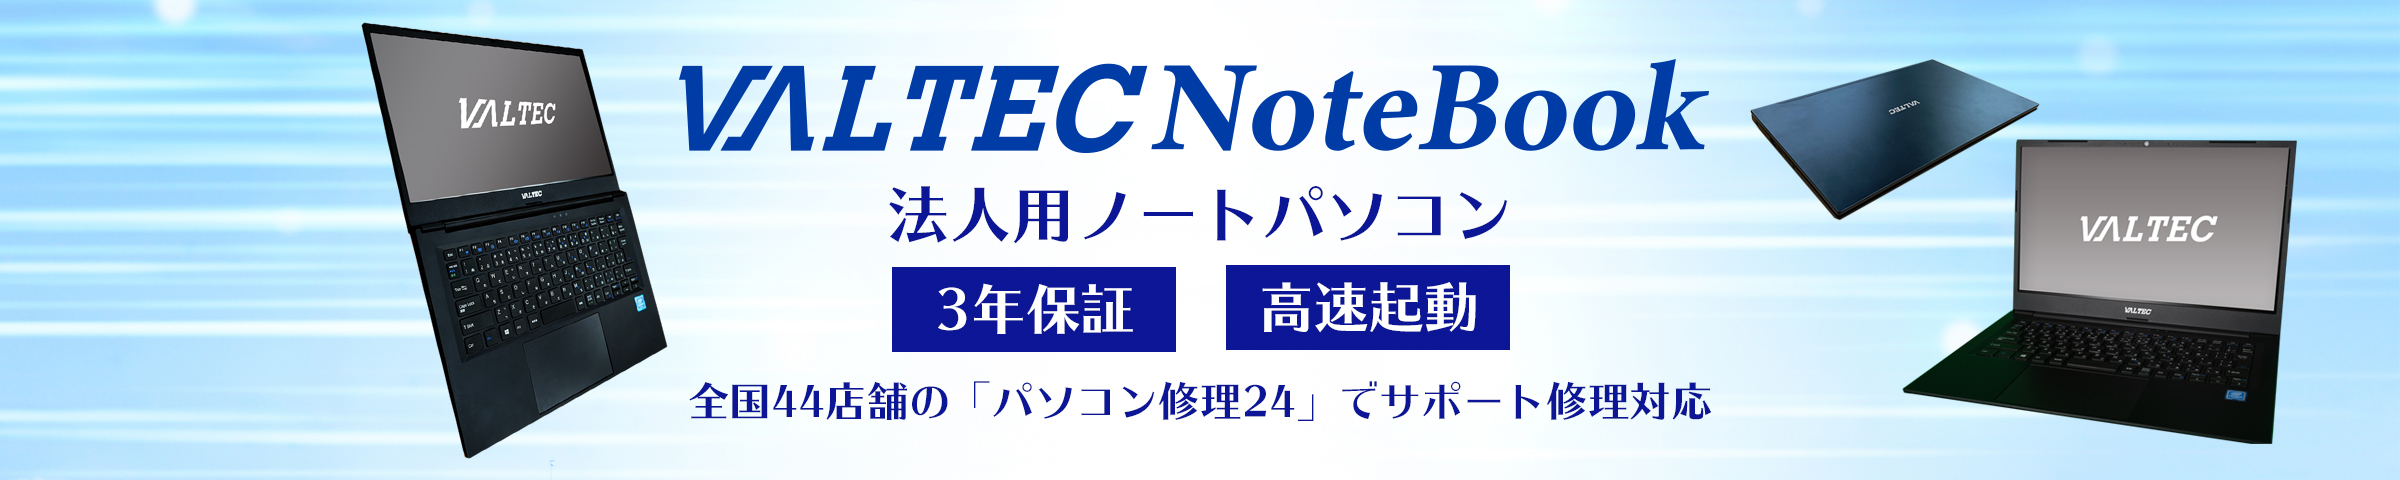 VALTEC NoteBook